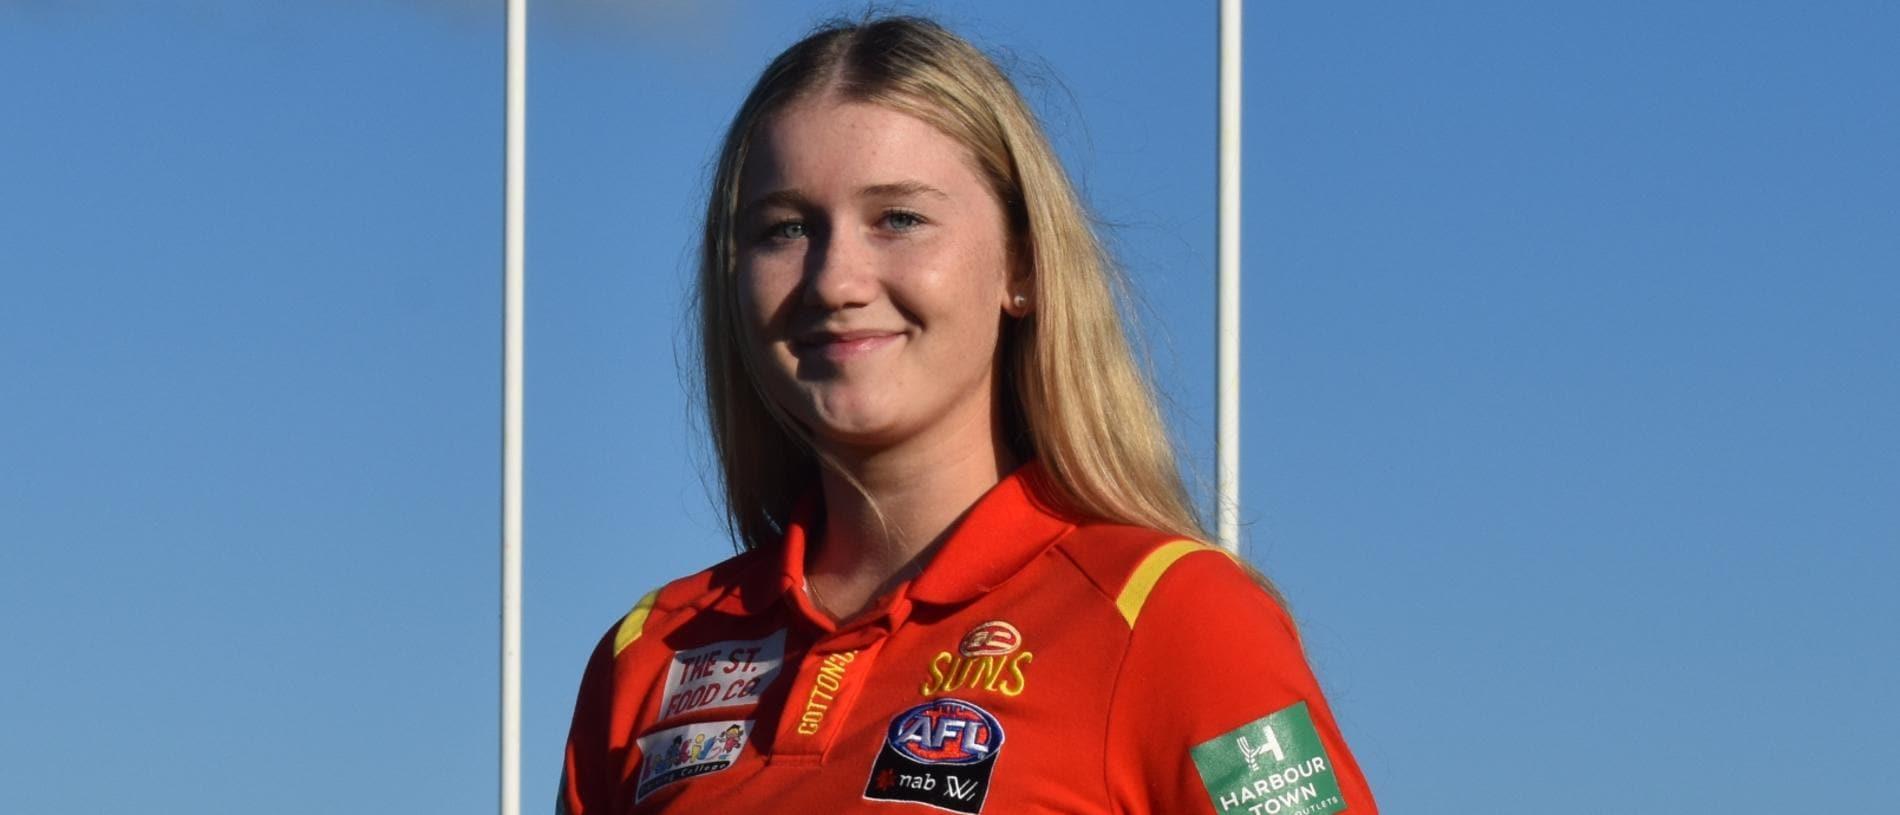 Wallis Randell from the Gold Coast Suns AFLW team in Mackay, September 6, 2021. Picture: Matthew Forrest